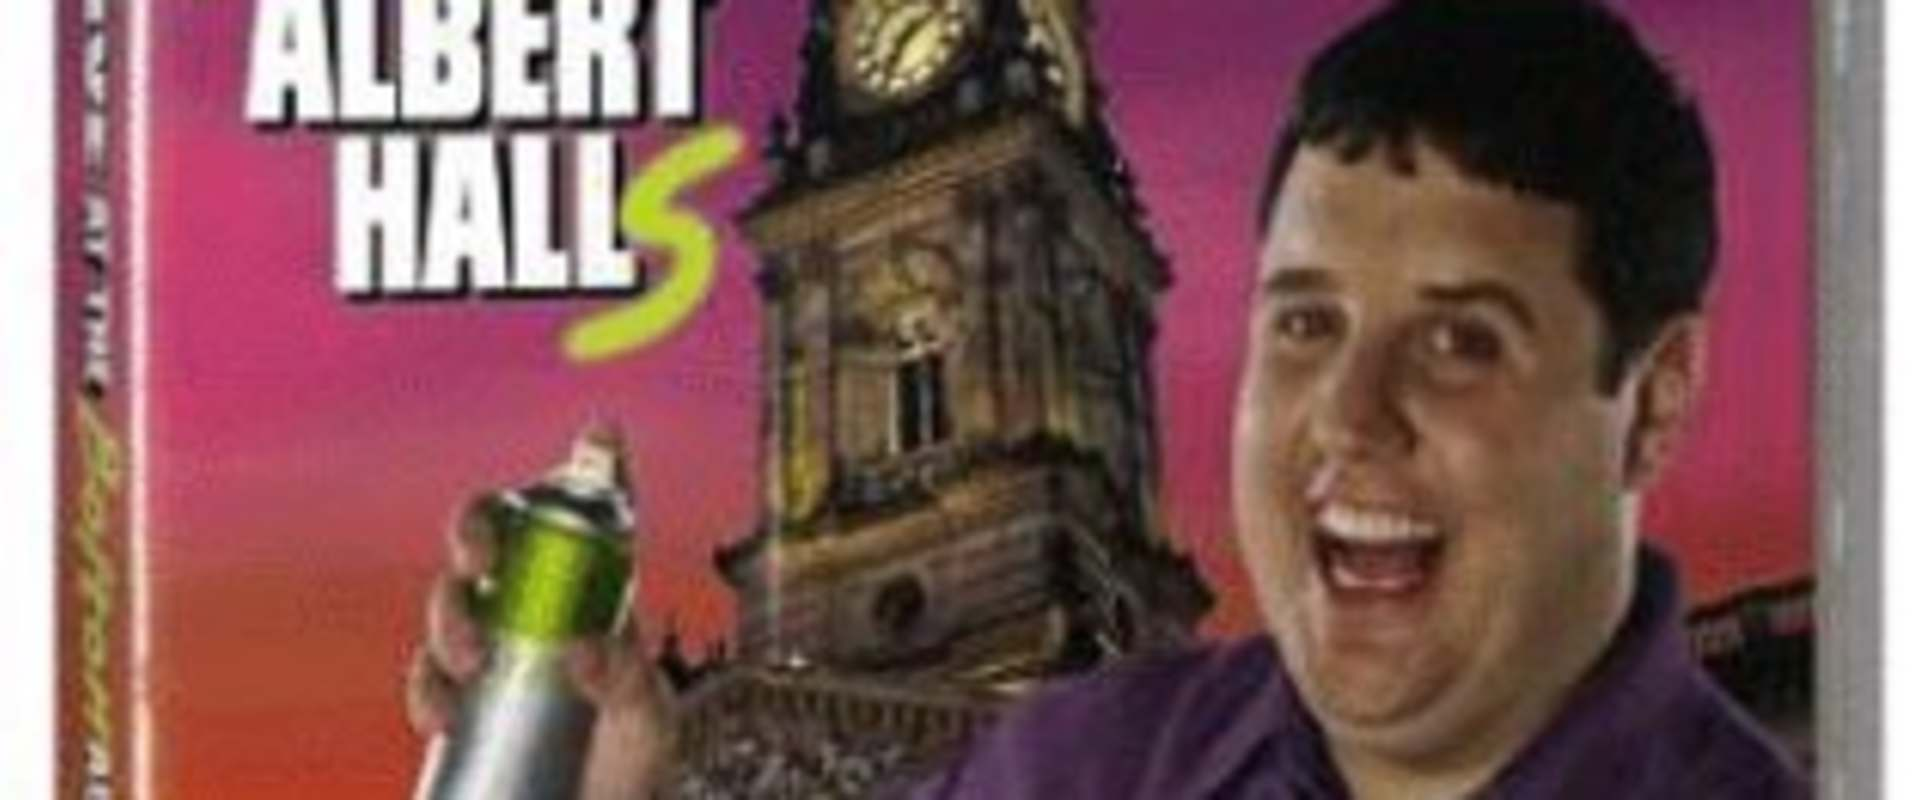 Peter Kay: Live at the Bolton Albert Halls background 1